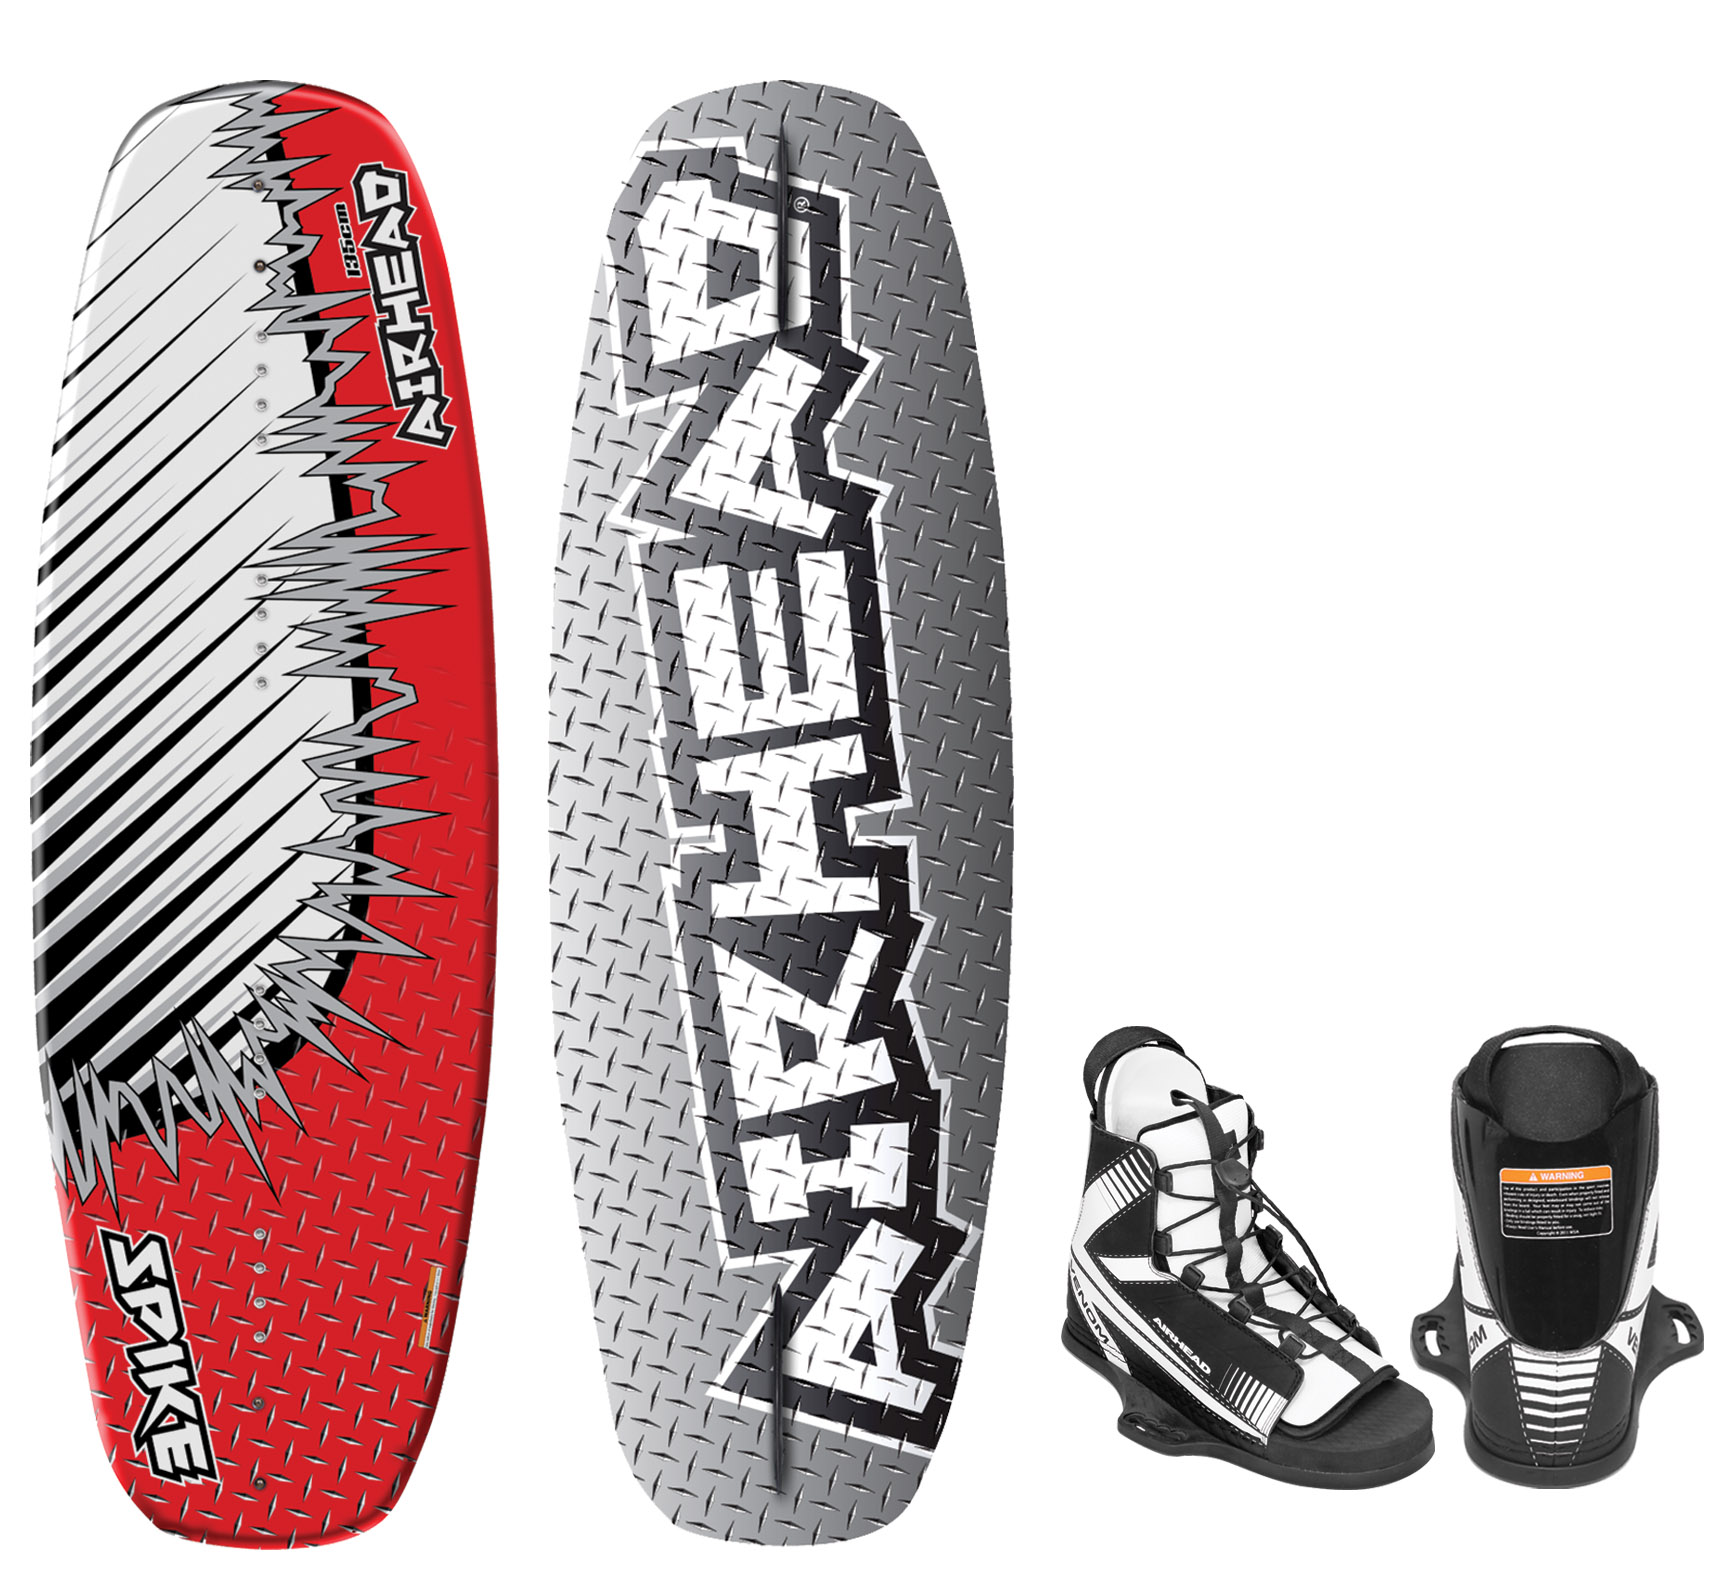 Airhead Spike Wakeboard with Goblin Bindings by AIRHEAD SPORTS GROUP